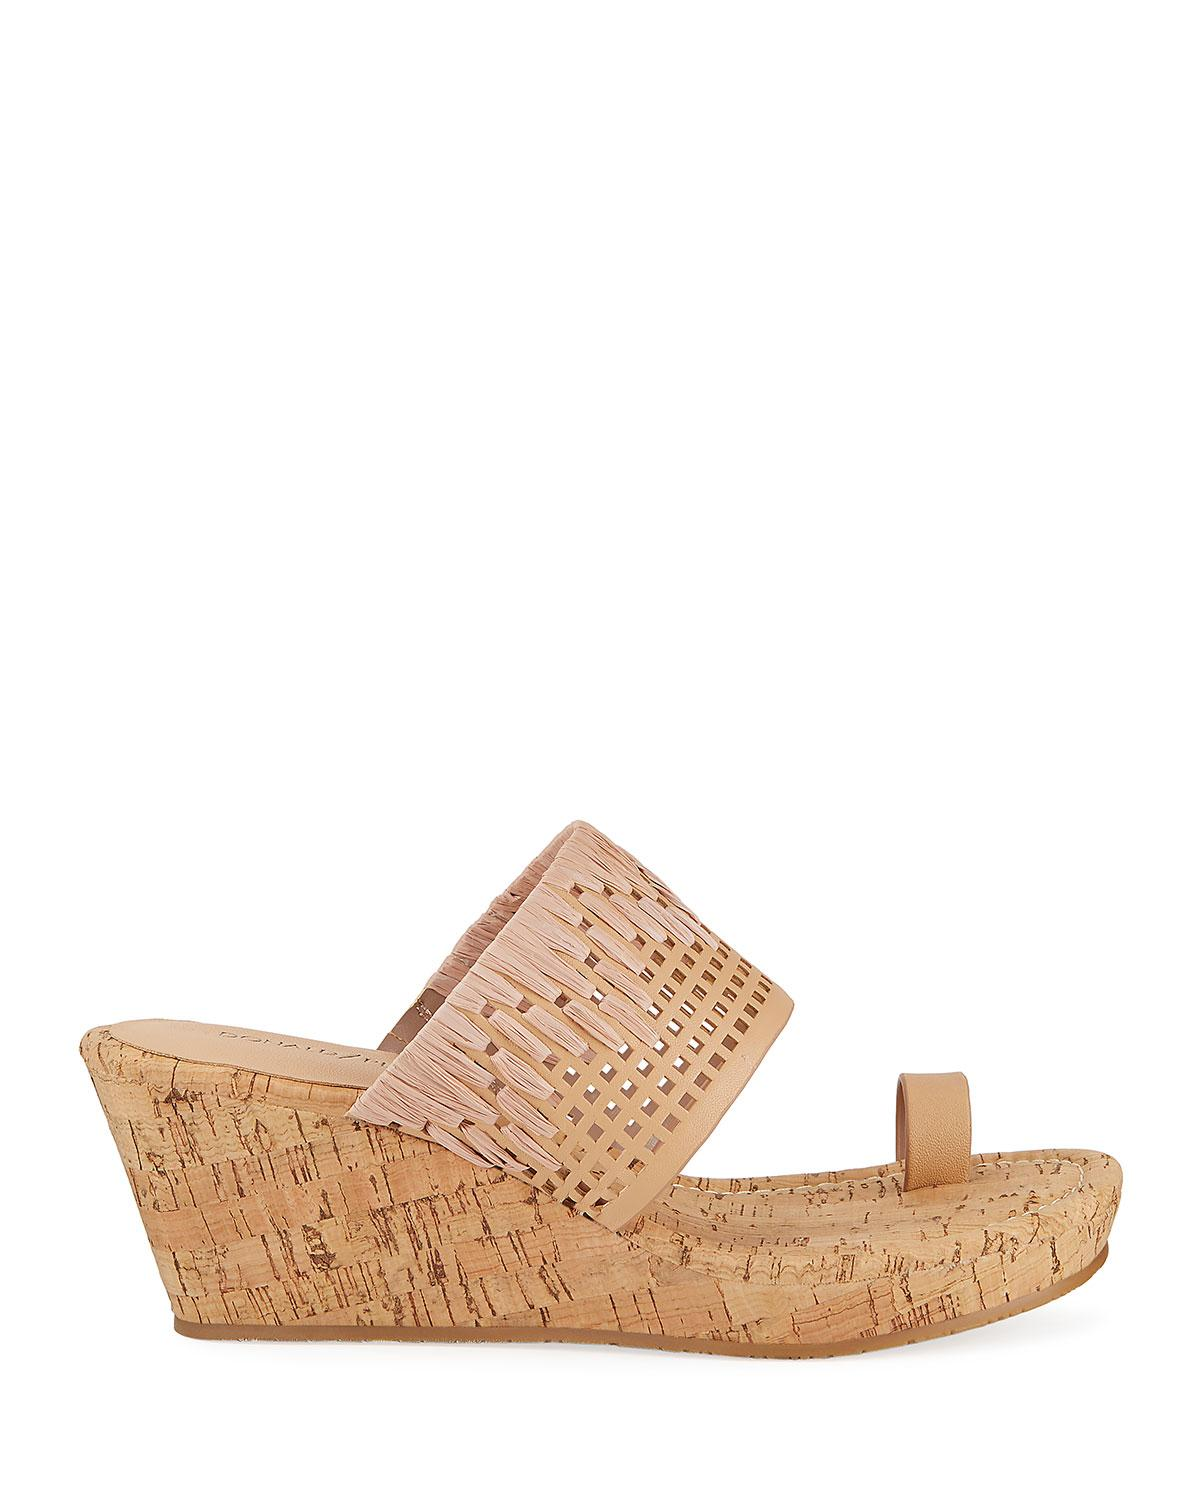 40ad68182 Lyst - Donald J Pliner Cutout Leather Cork-wedge Sandals